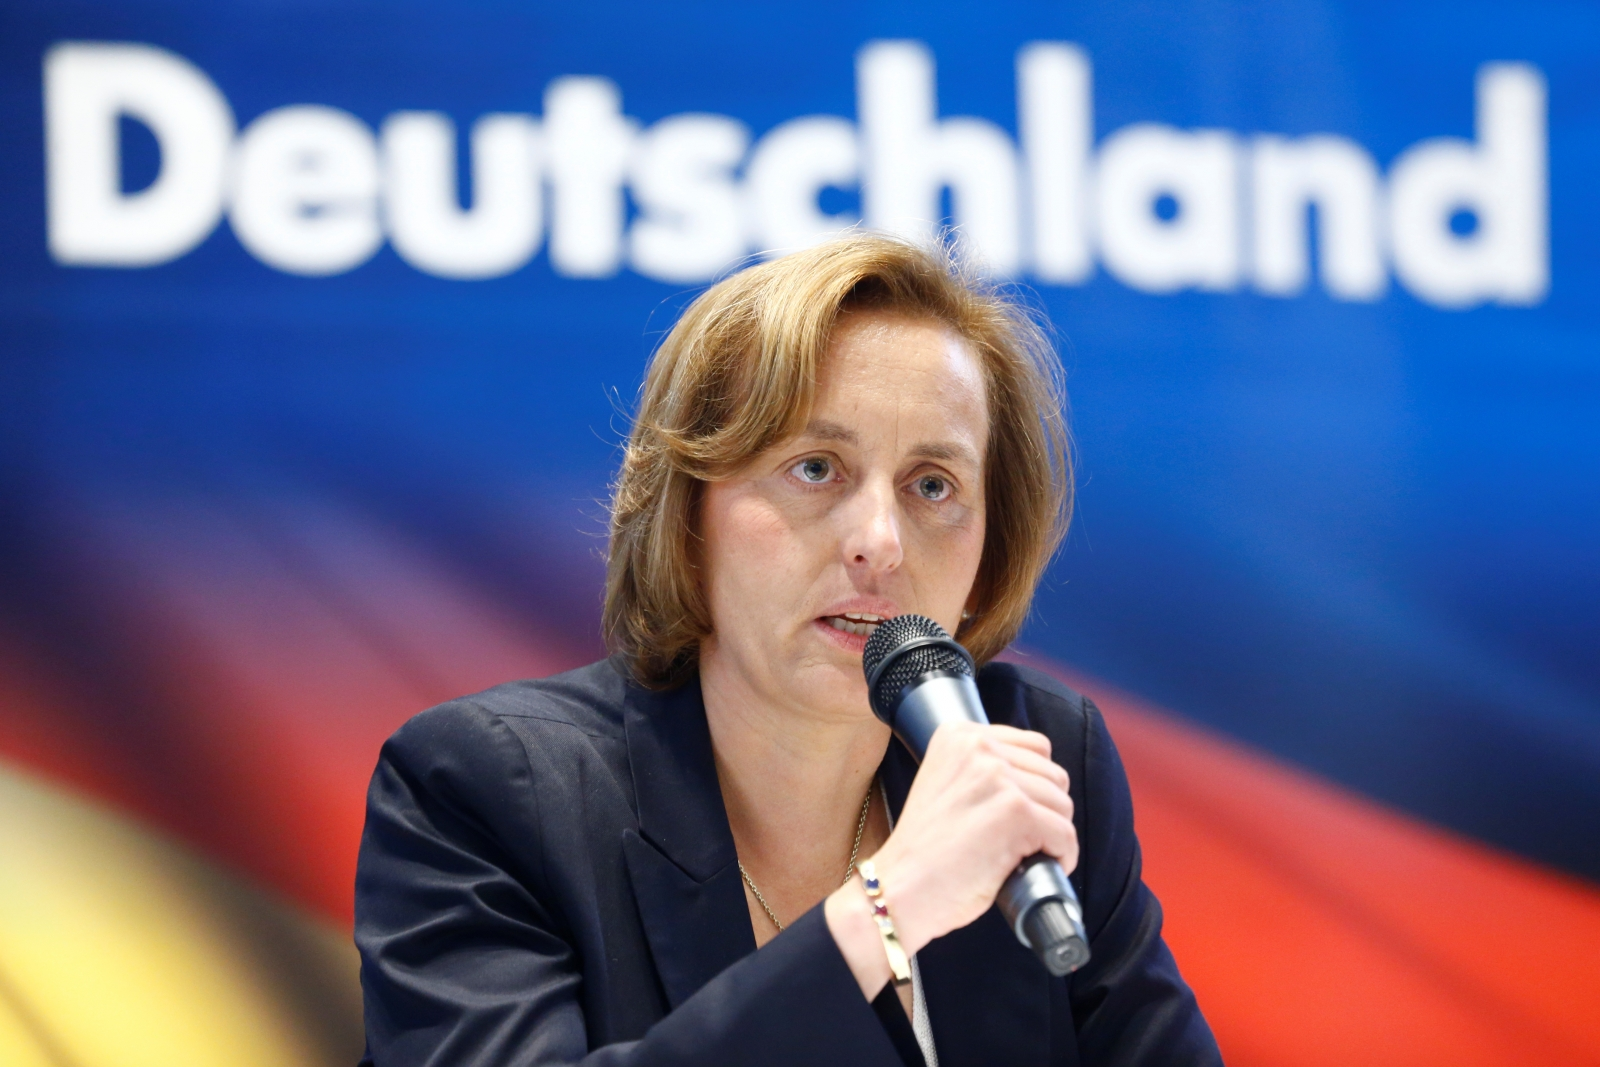 AfD tests Germany's new social media law as police probe Von Storch